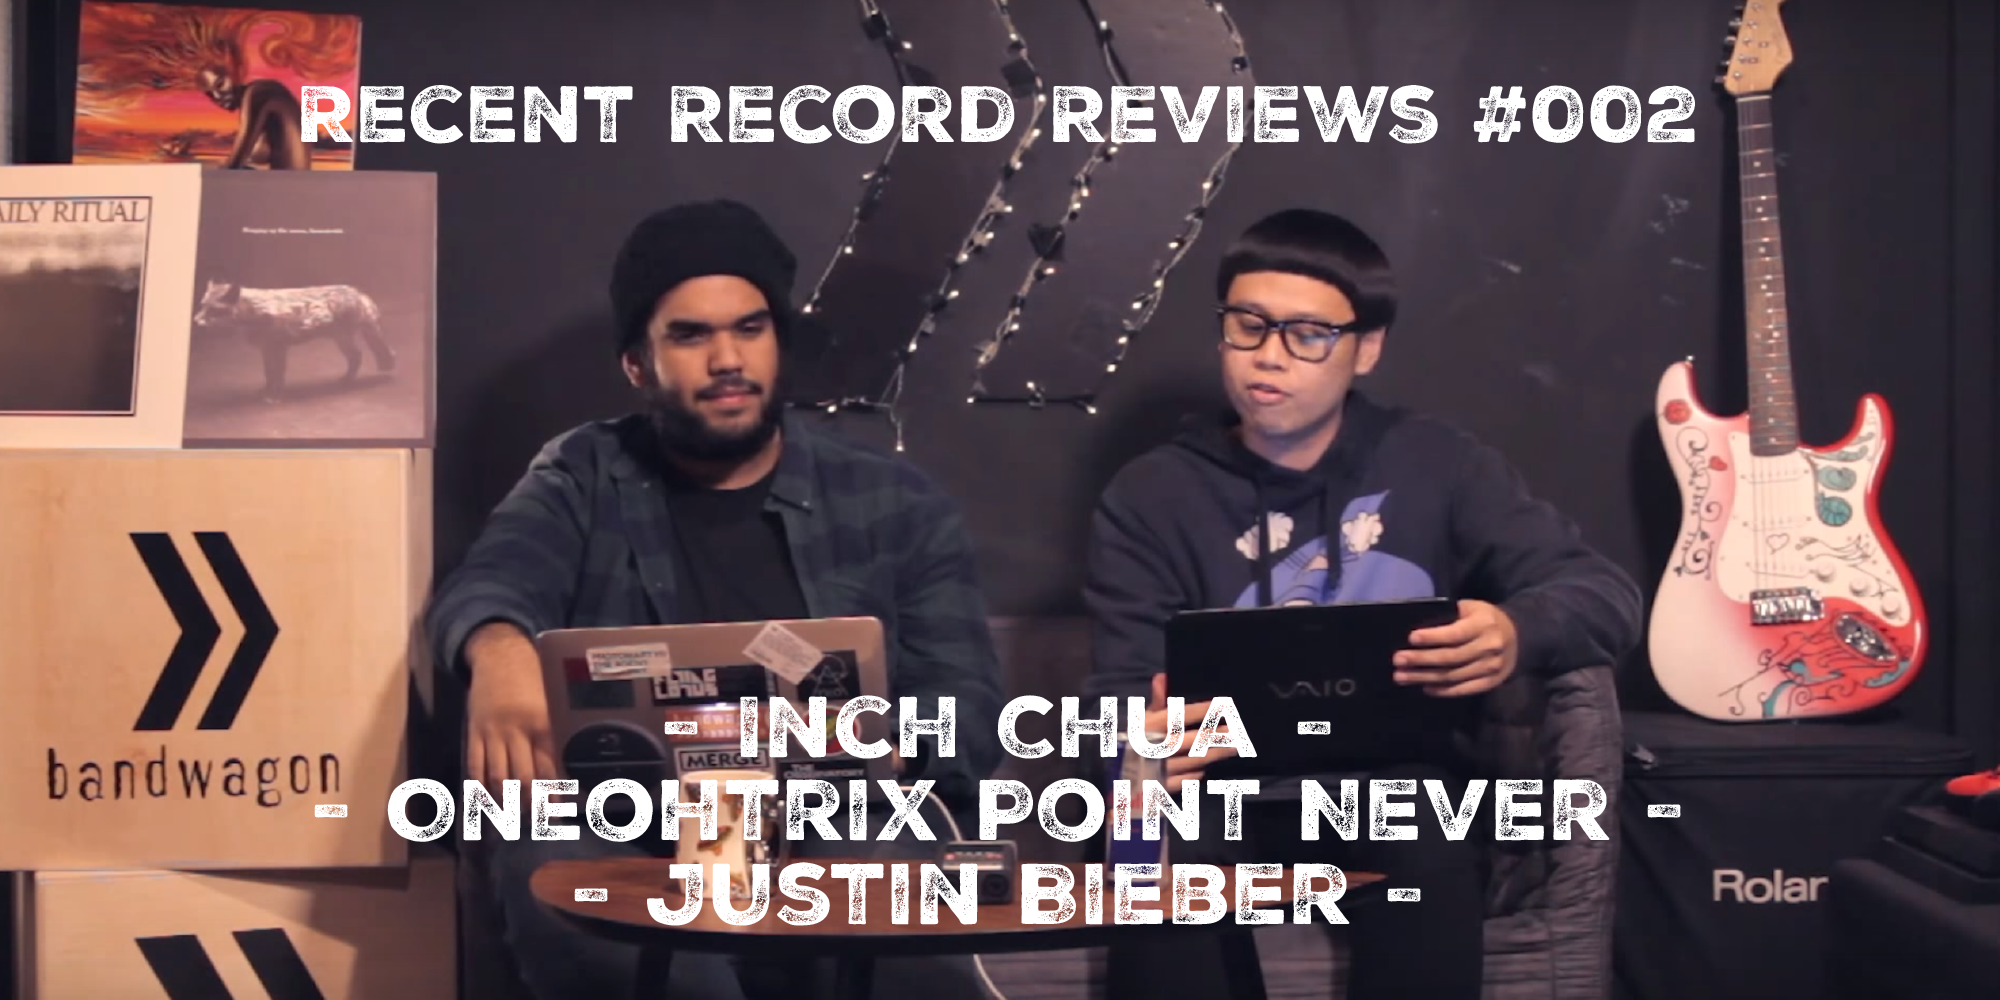 WATCH: Bandwagon Recent Record Reviews #002 - Inch Chua, Oneohtrix Point Never, Justin Bieber